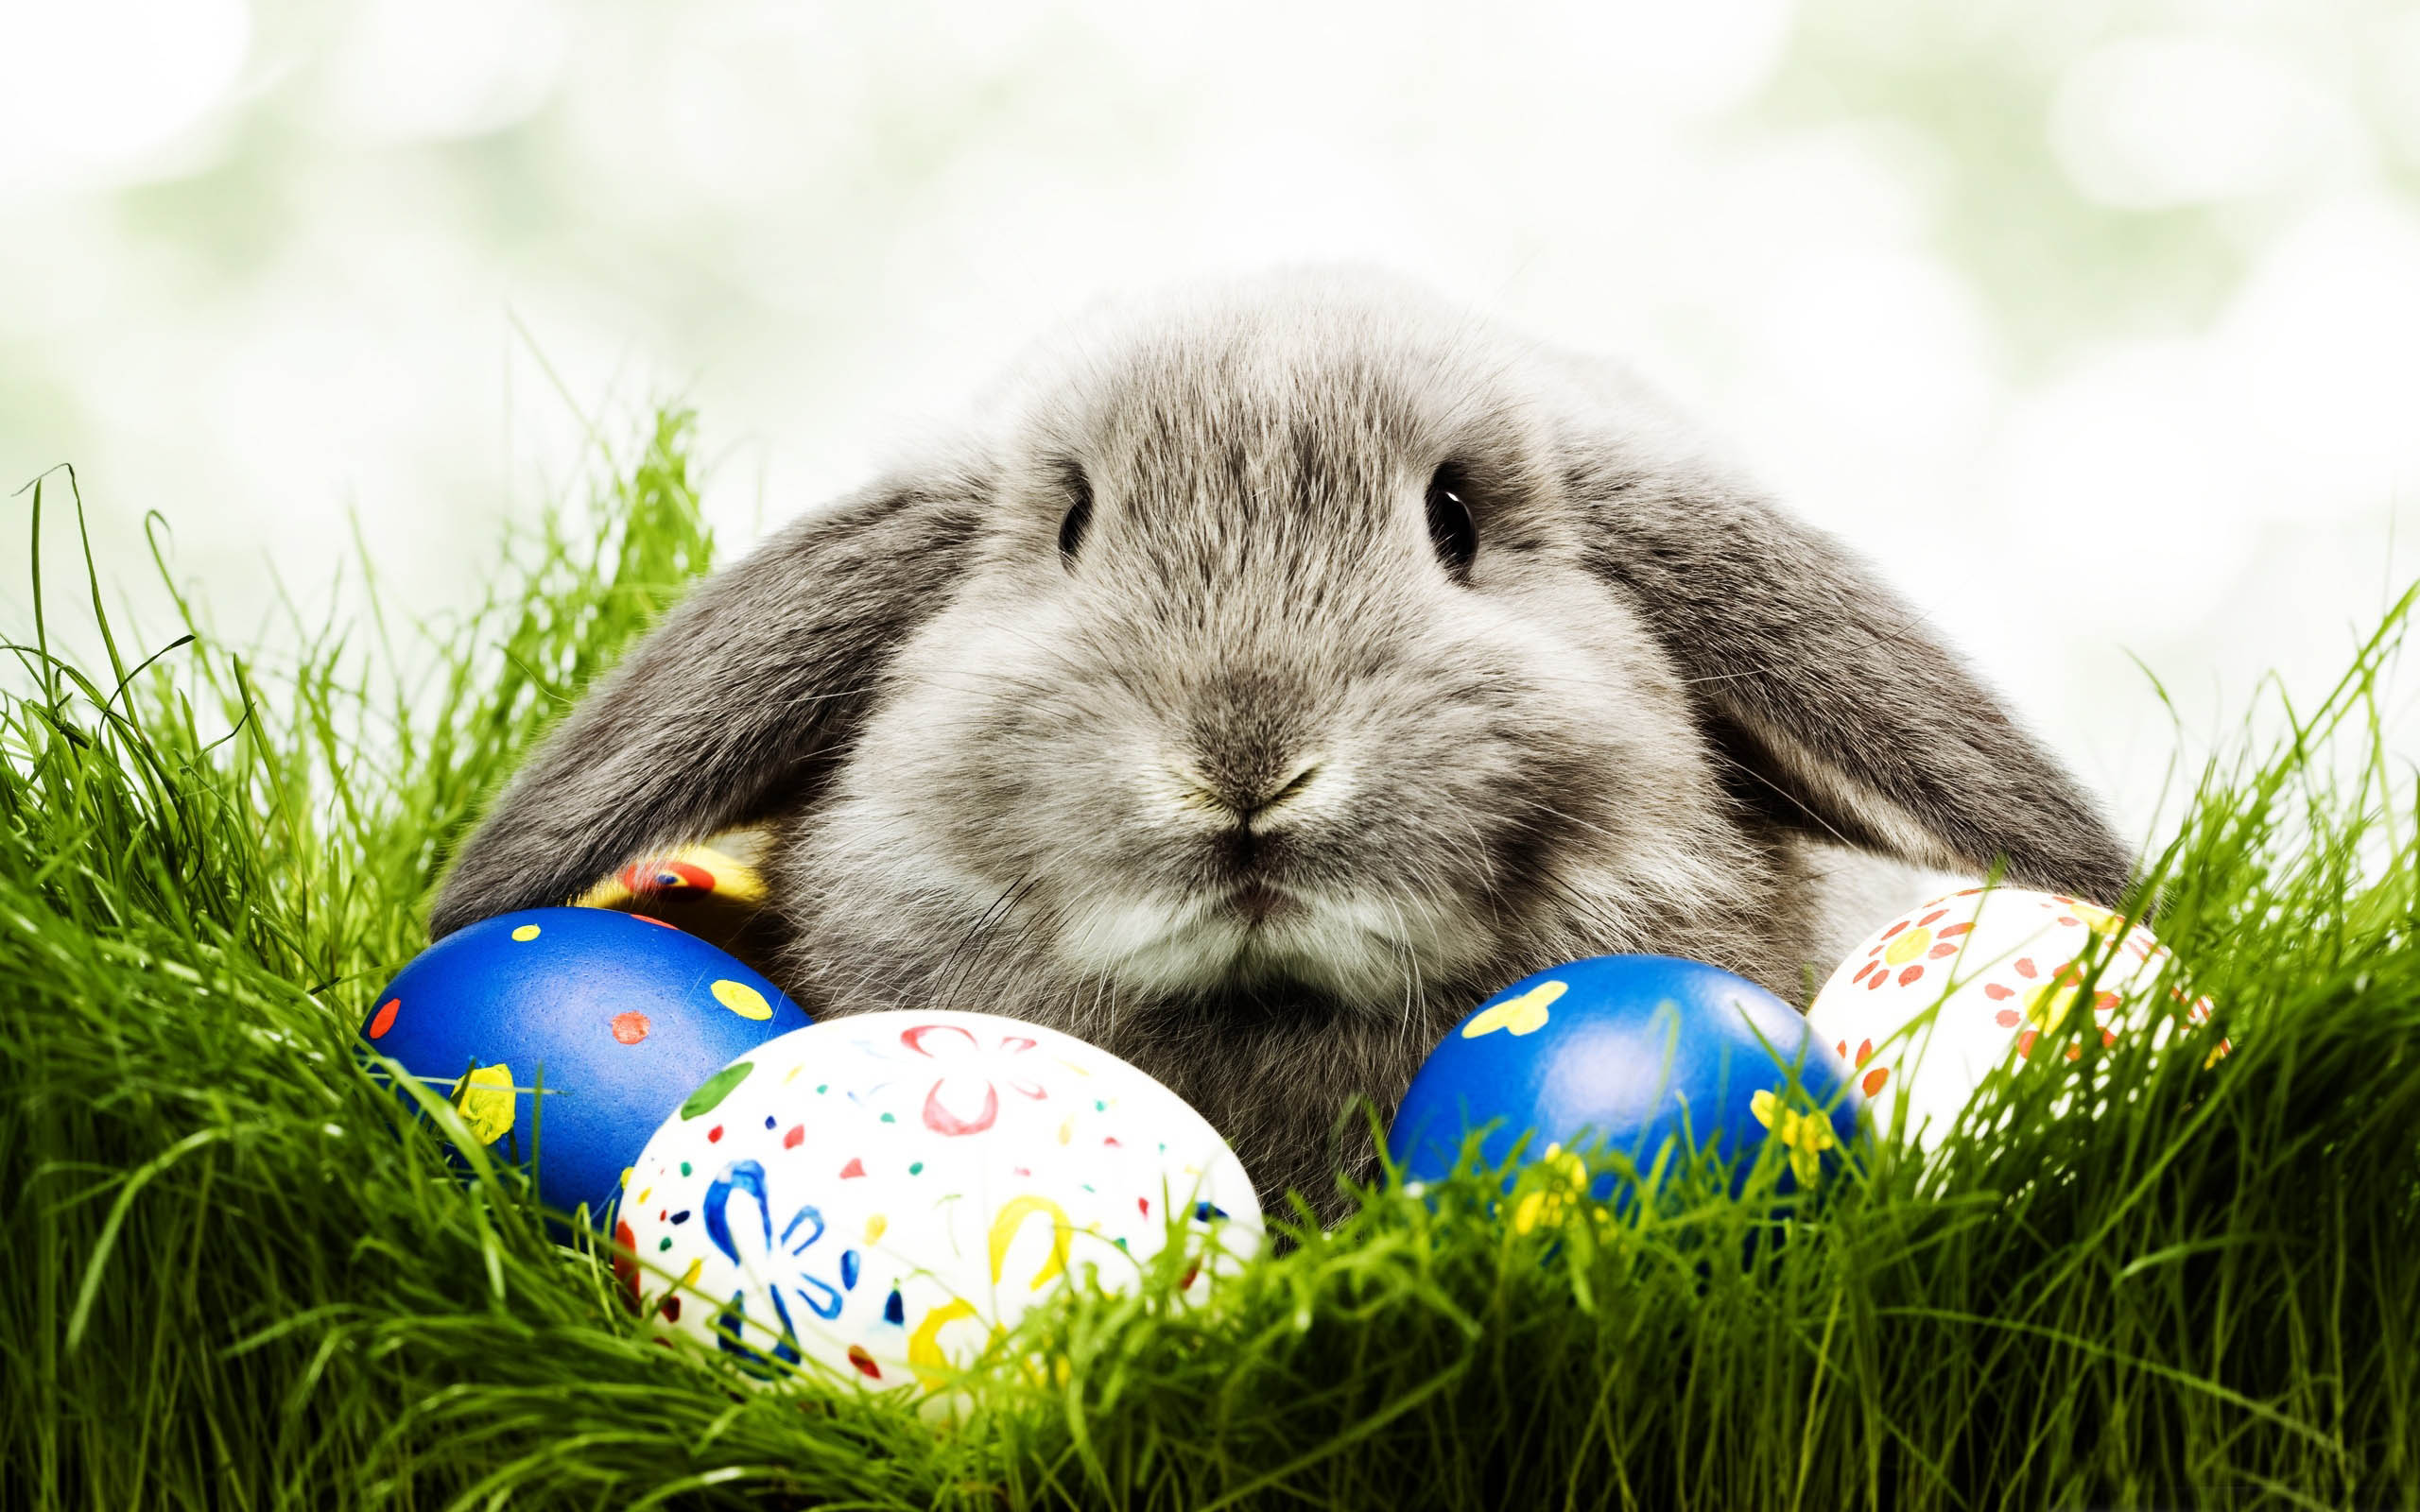 A Real Easter Bunny Comes With Real Consequences